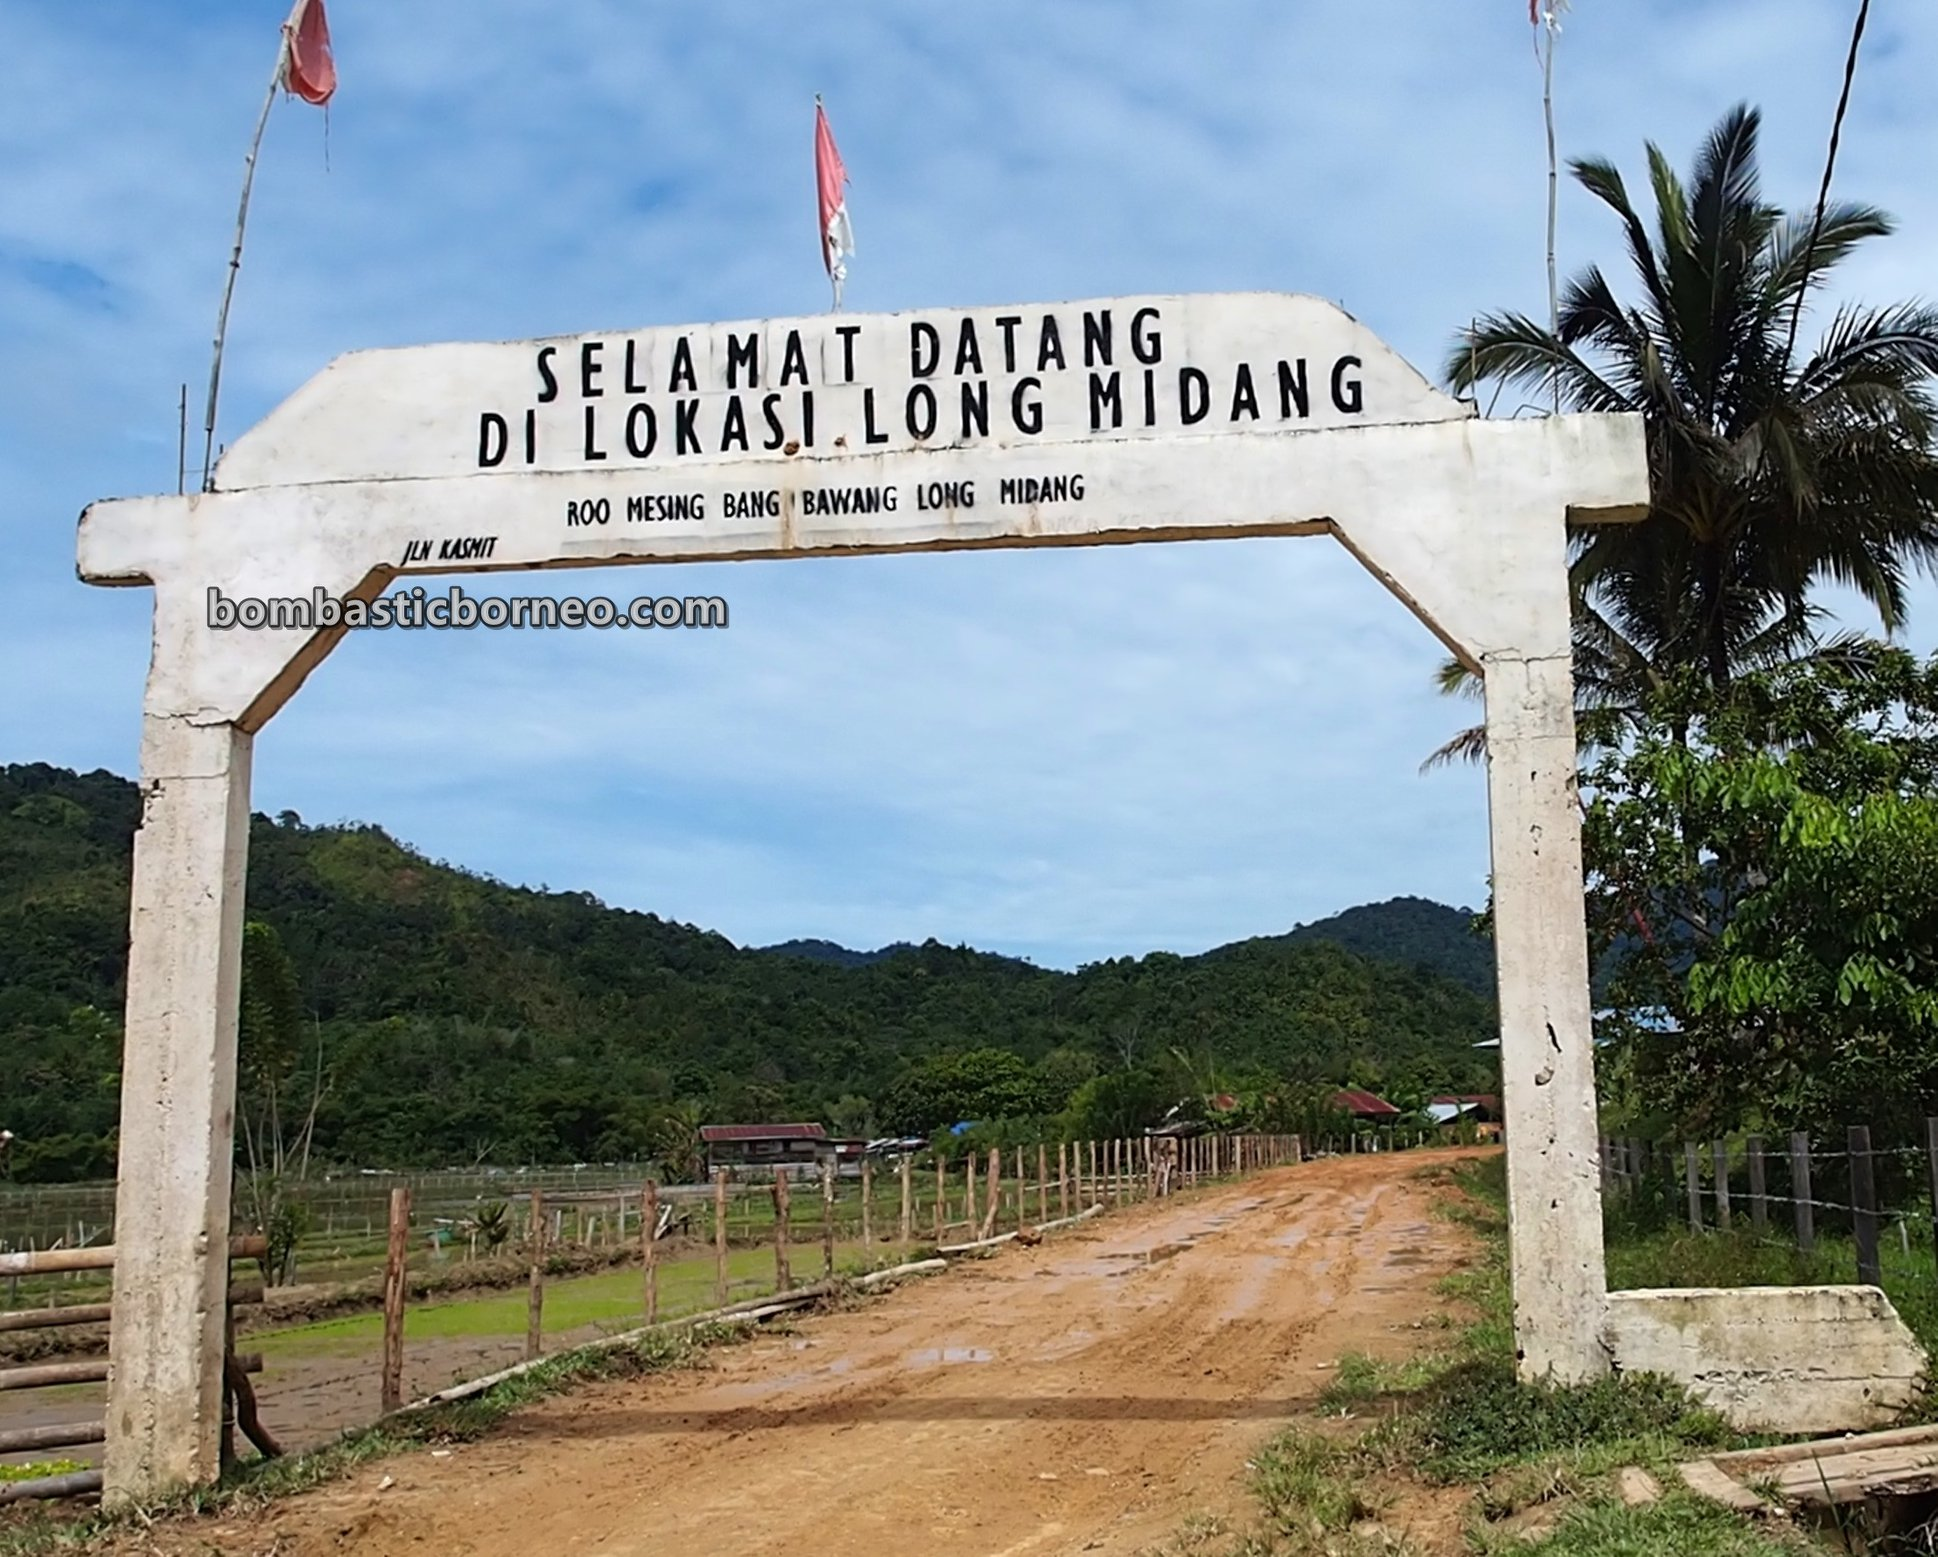 Dayak Lundayeh, Border village, adventure, authentic, backpackers, exploration, Interior, Highlands, native, tourist attraction, travel guide, Cross Border, Trans Borneo, 跨境婆罗洲印尼, 北加里曼丹内陆